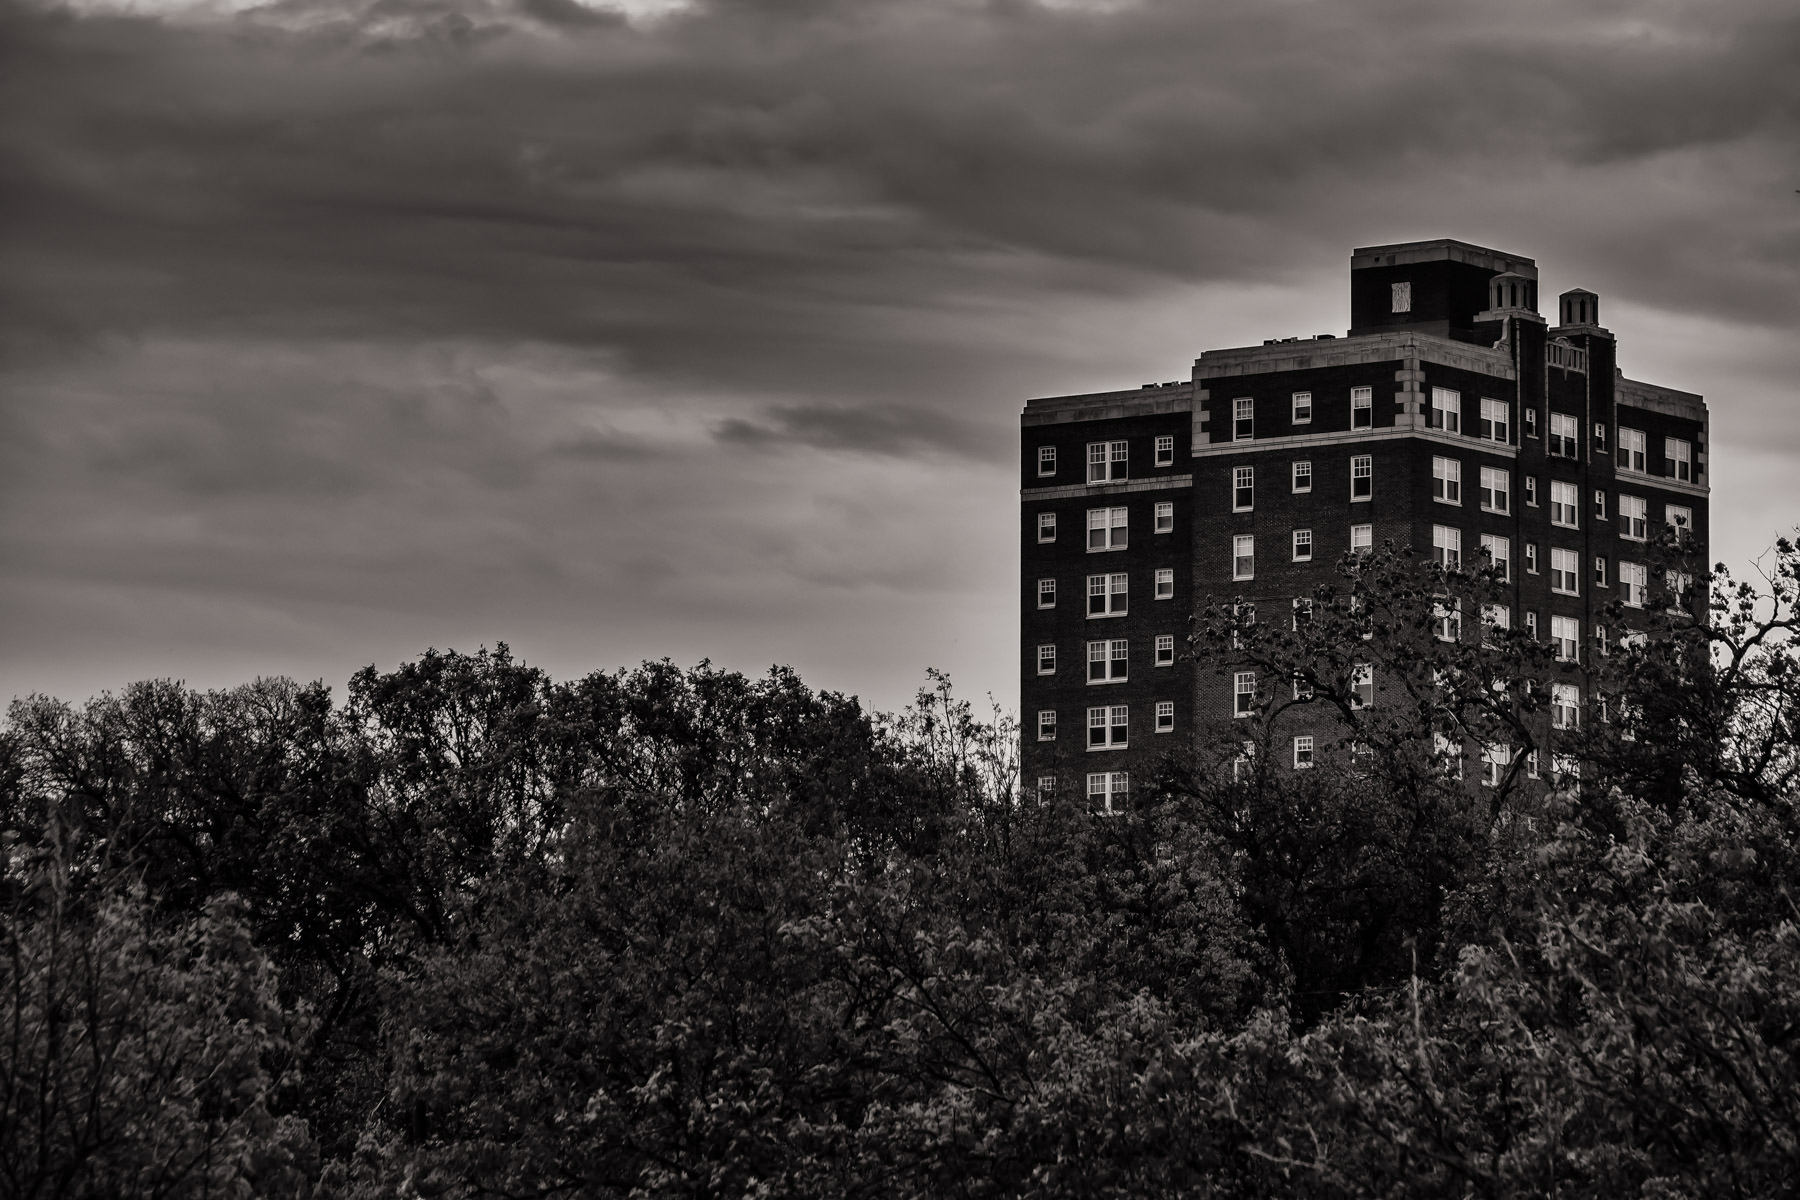 Forest Park Tower, built in 1930, rises over the surrounding trees of the Southside area of Fort Worth, Texas.